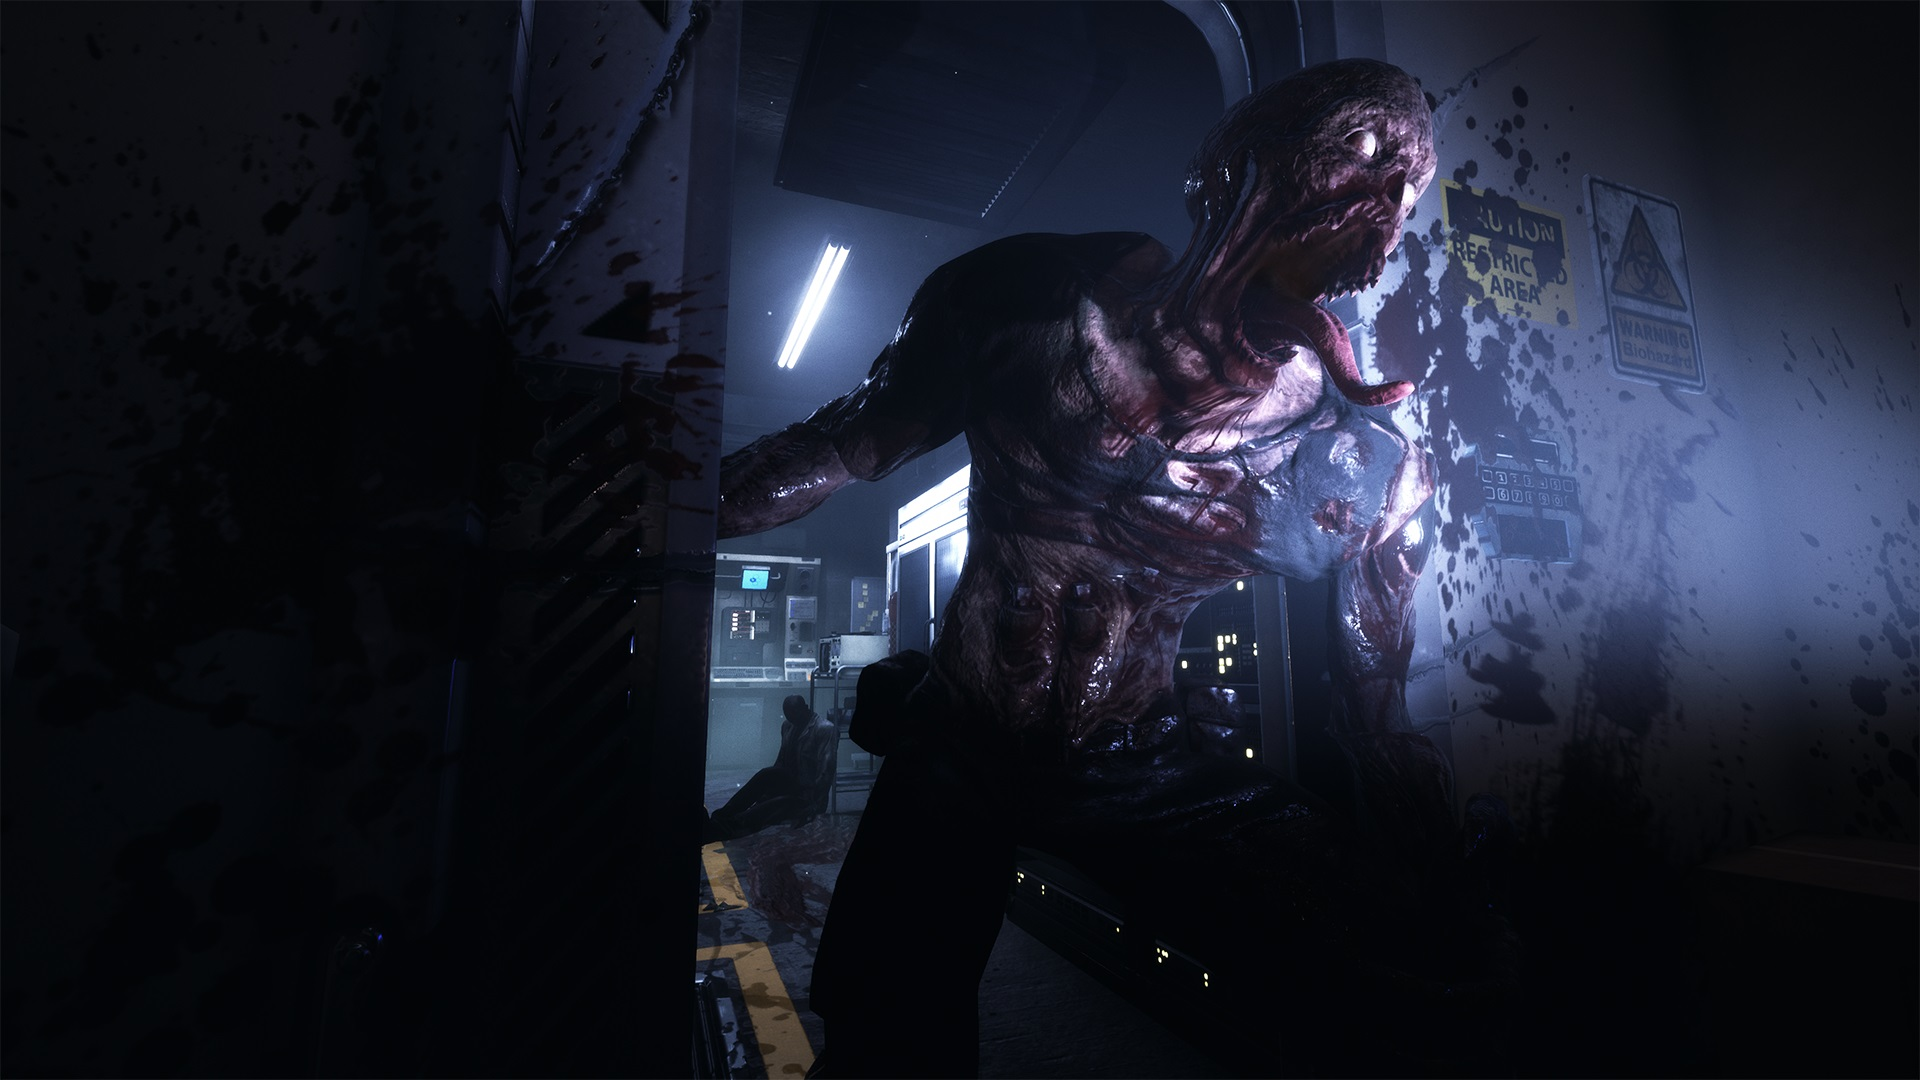 Daymare brings back the best of 90s survival horror